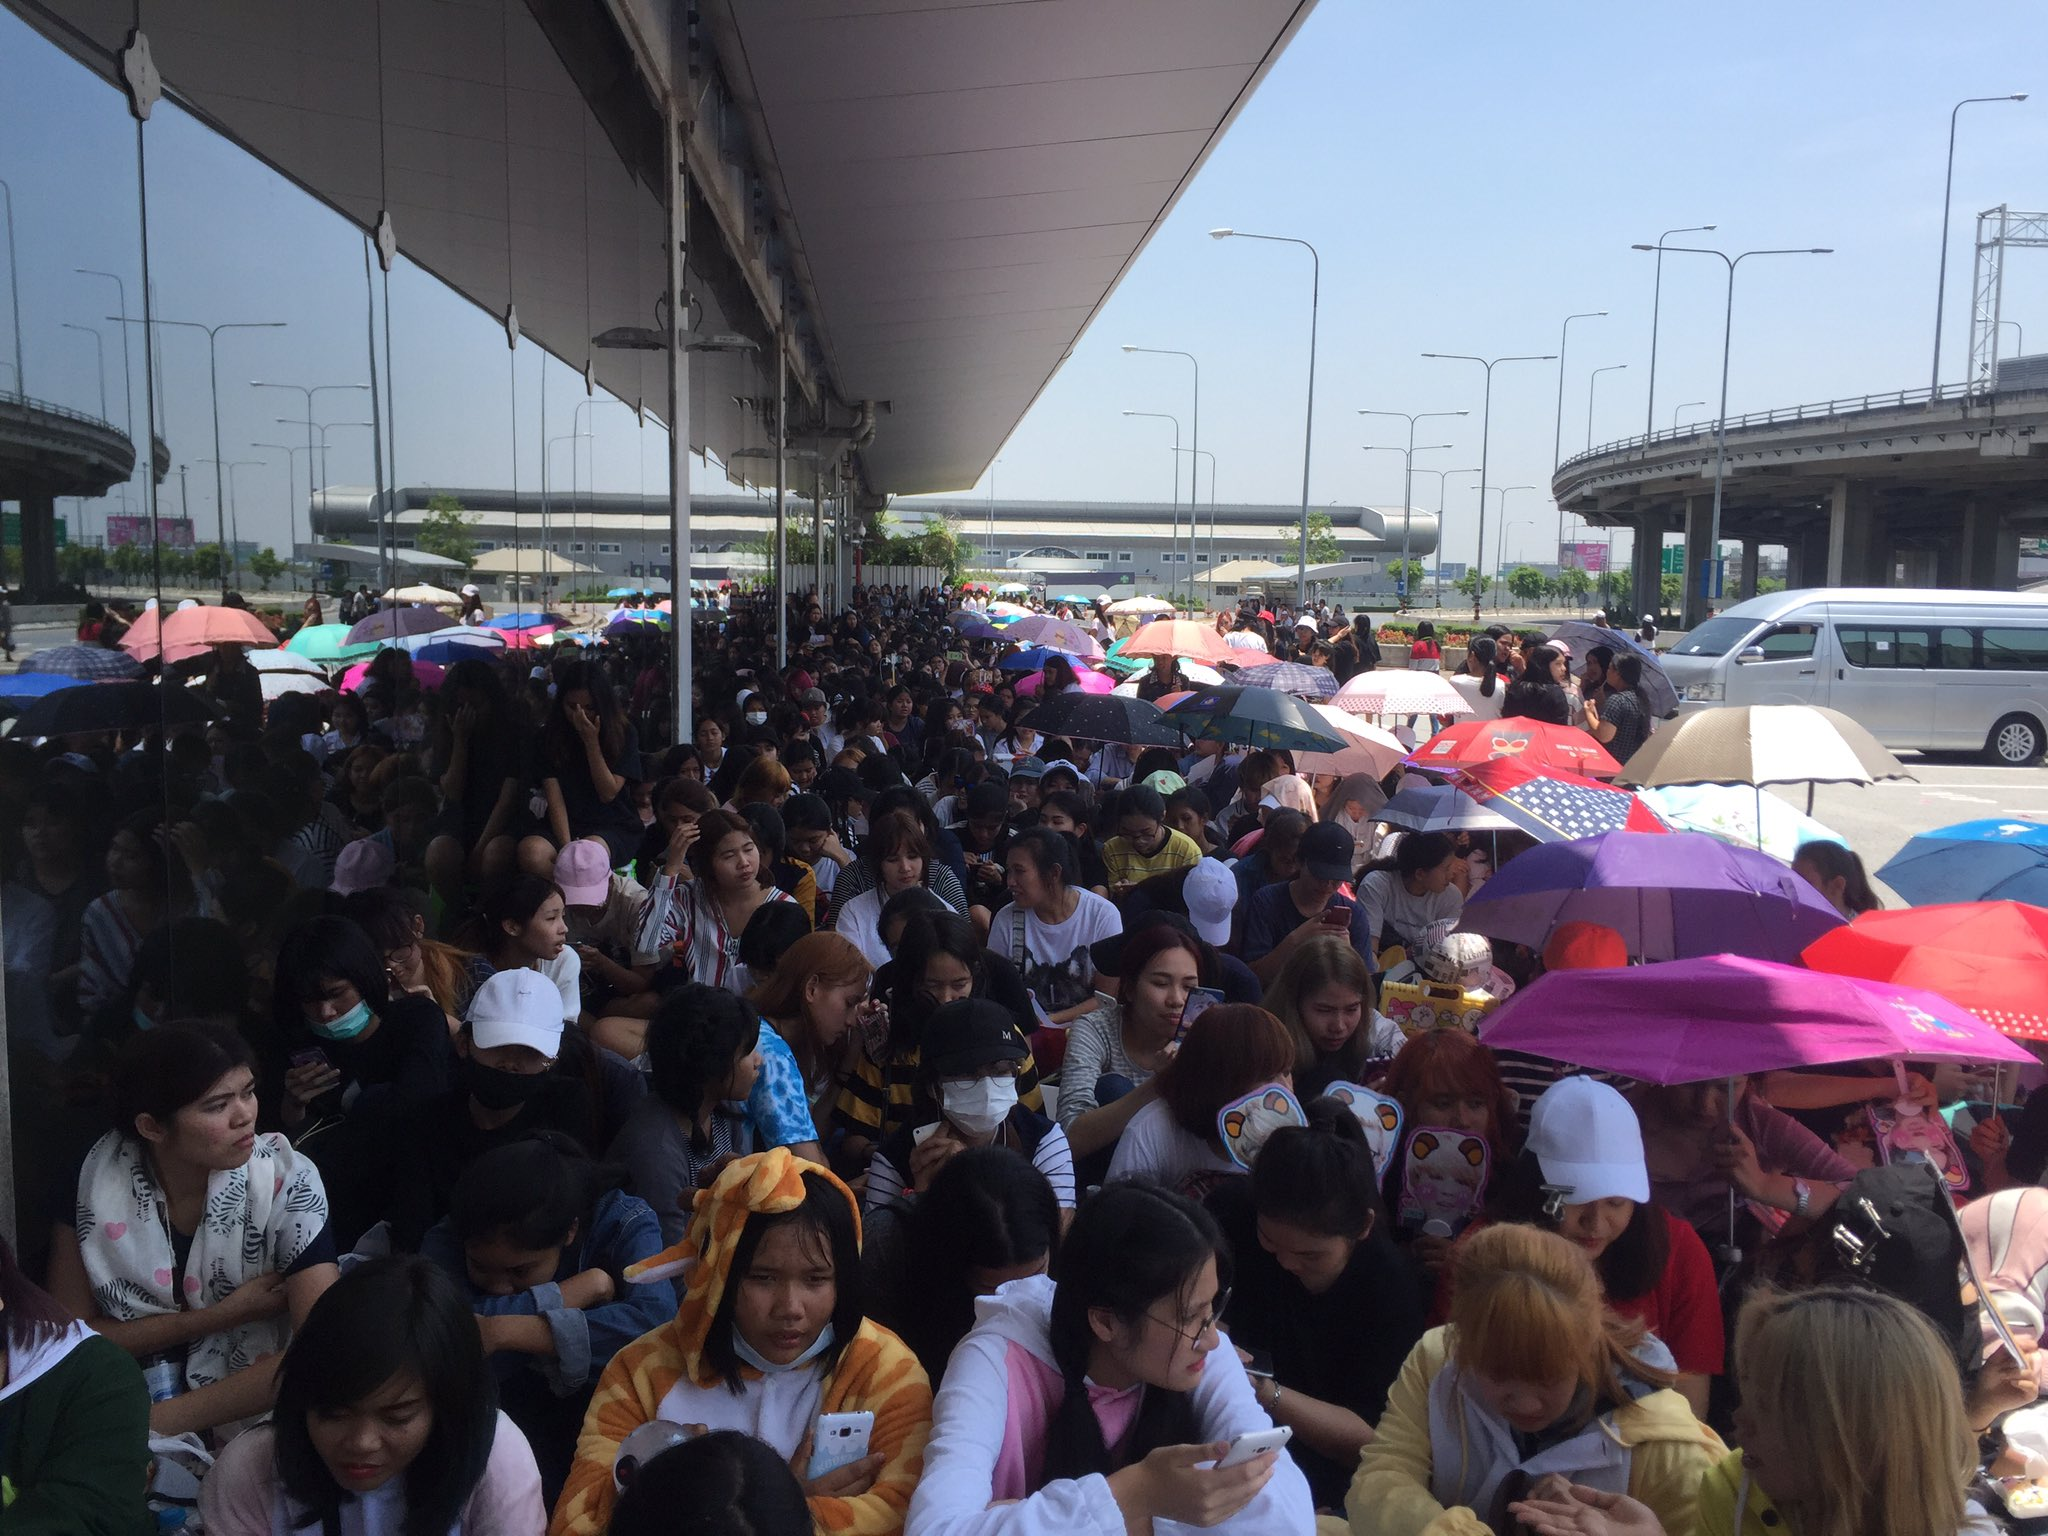 ไม่ธรรมดา .. #WelcomeBTStoThailand #WingsTourInBangkok https://t.co/DwyoHEvPqS